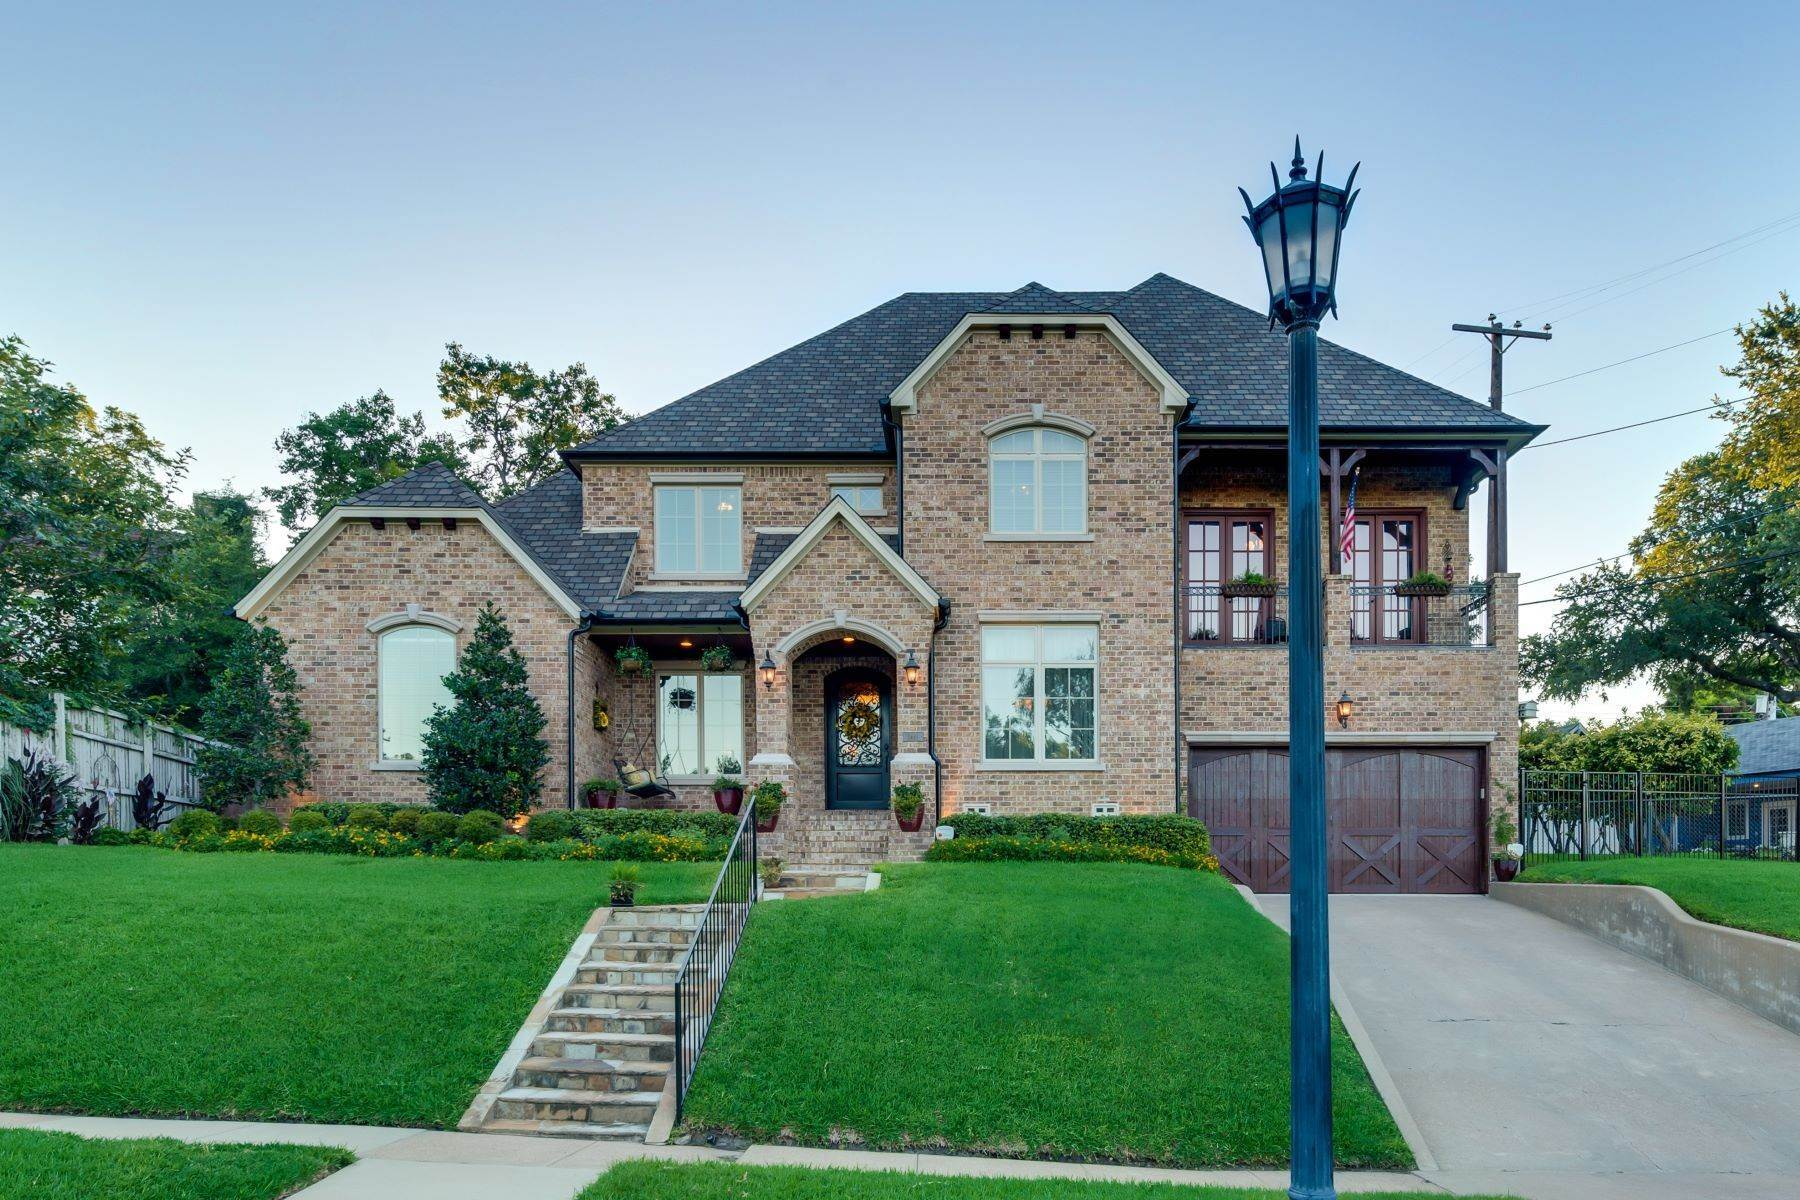 Single Family Homes for Sale at 2448 Winton Terrace, Fort Worth, TX, 76109 2448 Winton Terrace Fort Worth, Texas 76109 United States